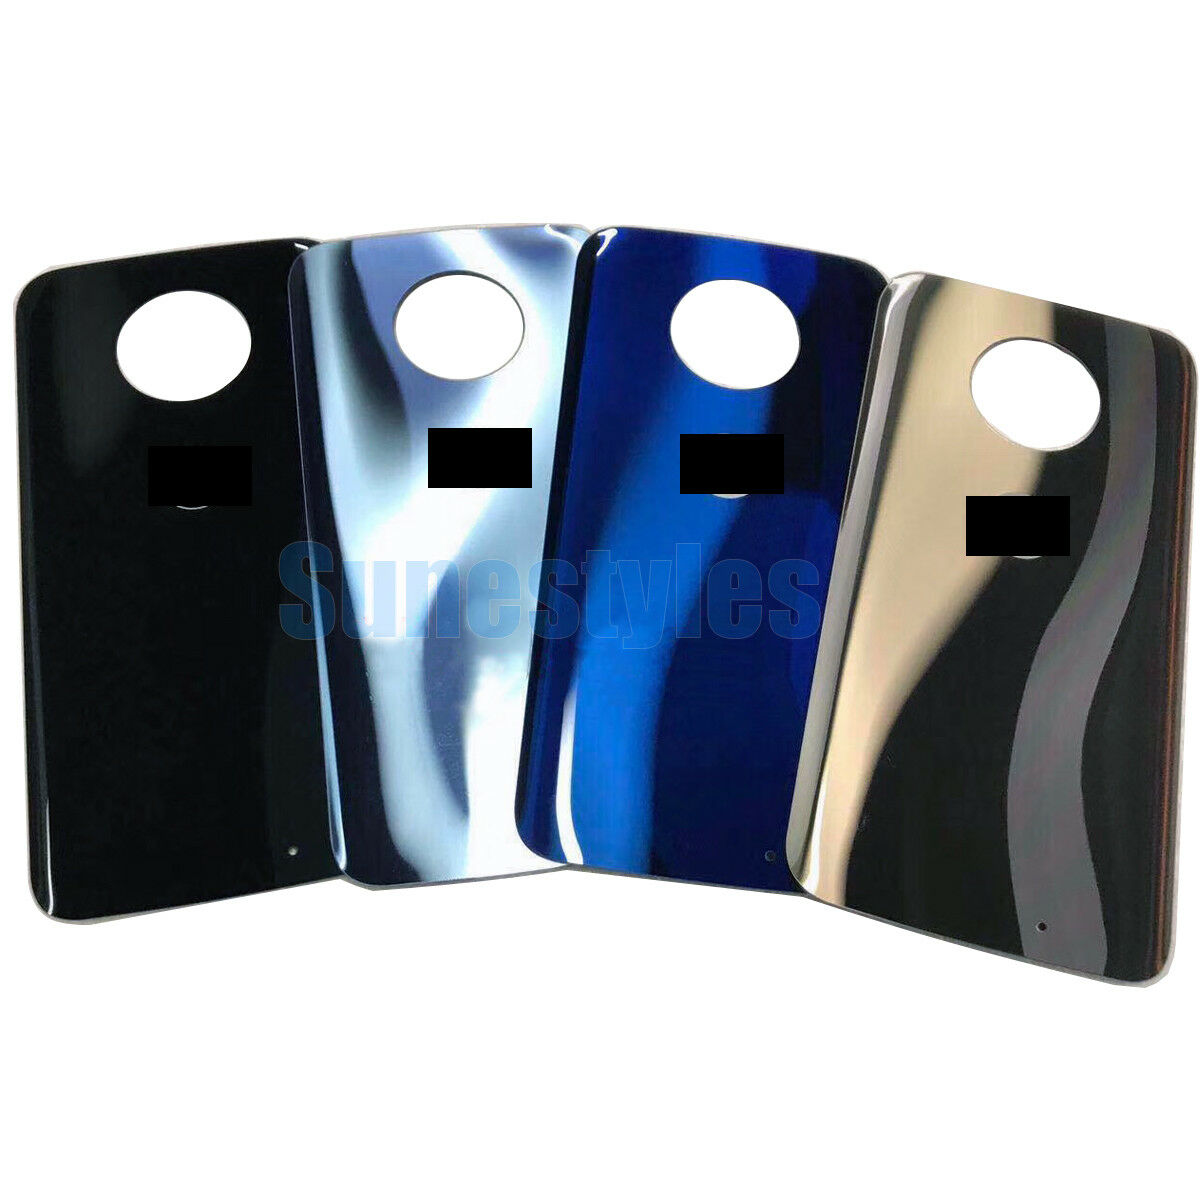 new product 5d079 12fd8 Details about New Rear Glass Battery Back Cover Repair For Motorola Moto X4  X 4th XT1900